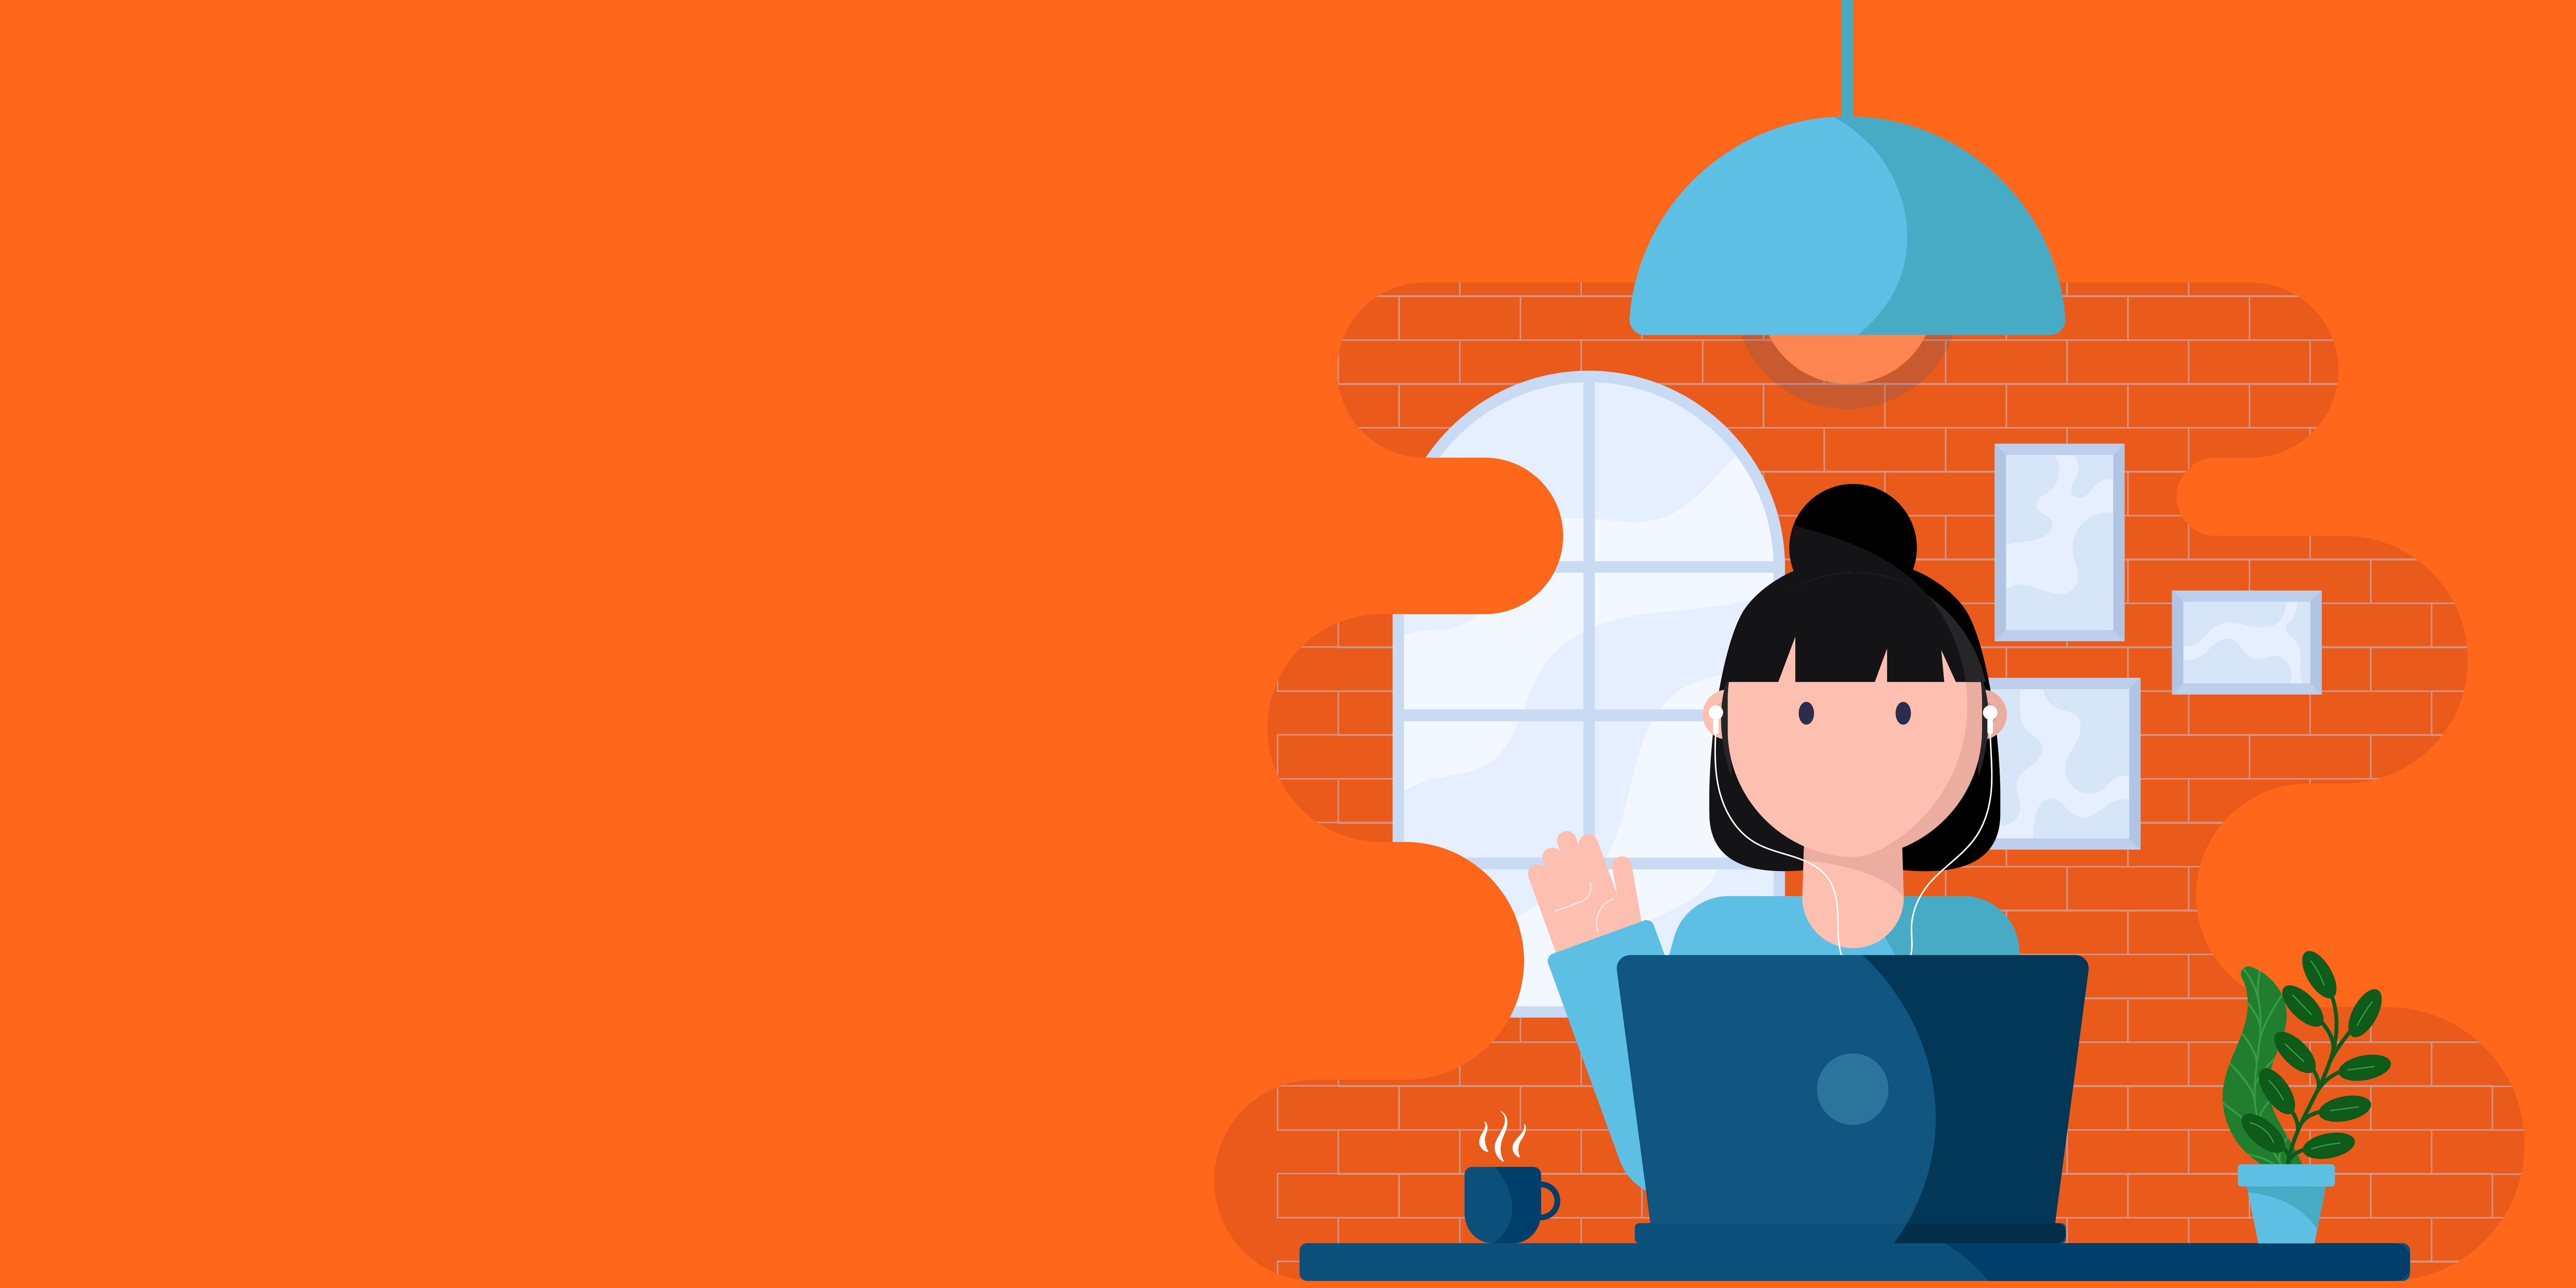 5 Great– and Humorous– Examples of Working Remotely